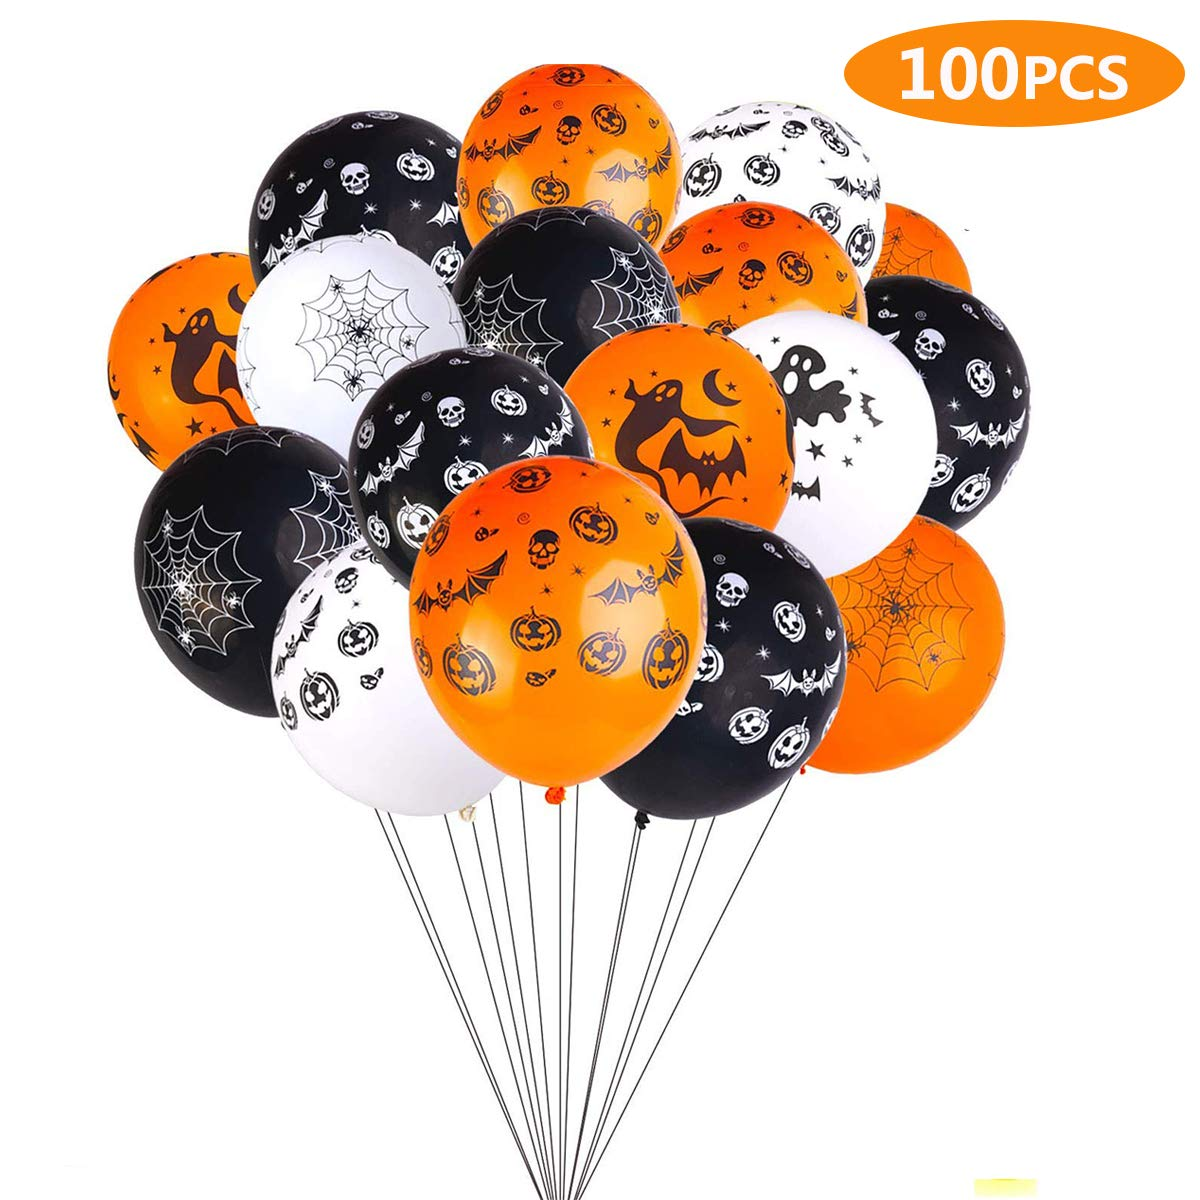 AIRERA Halloween Balloons Decorations